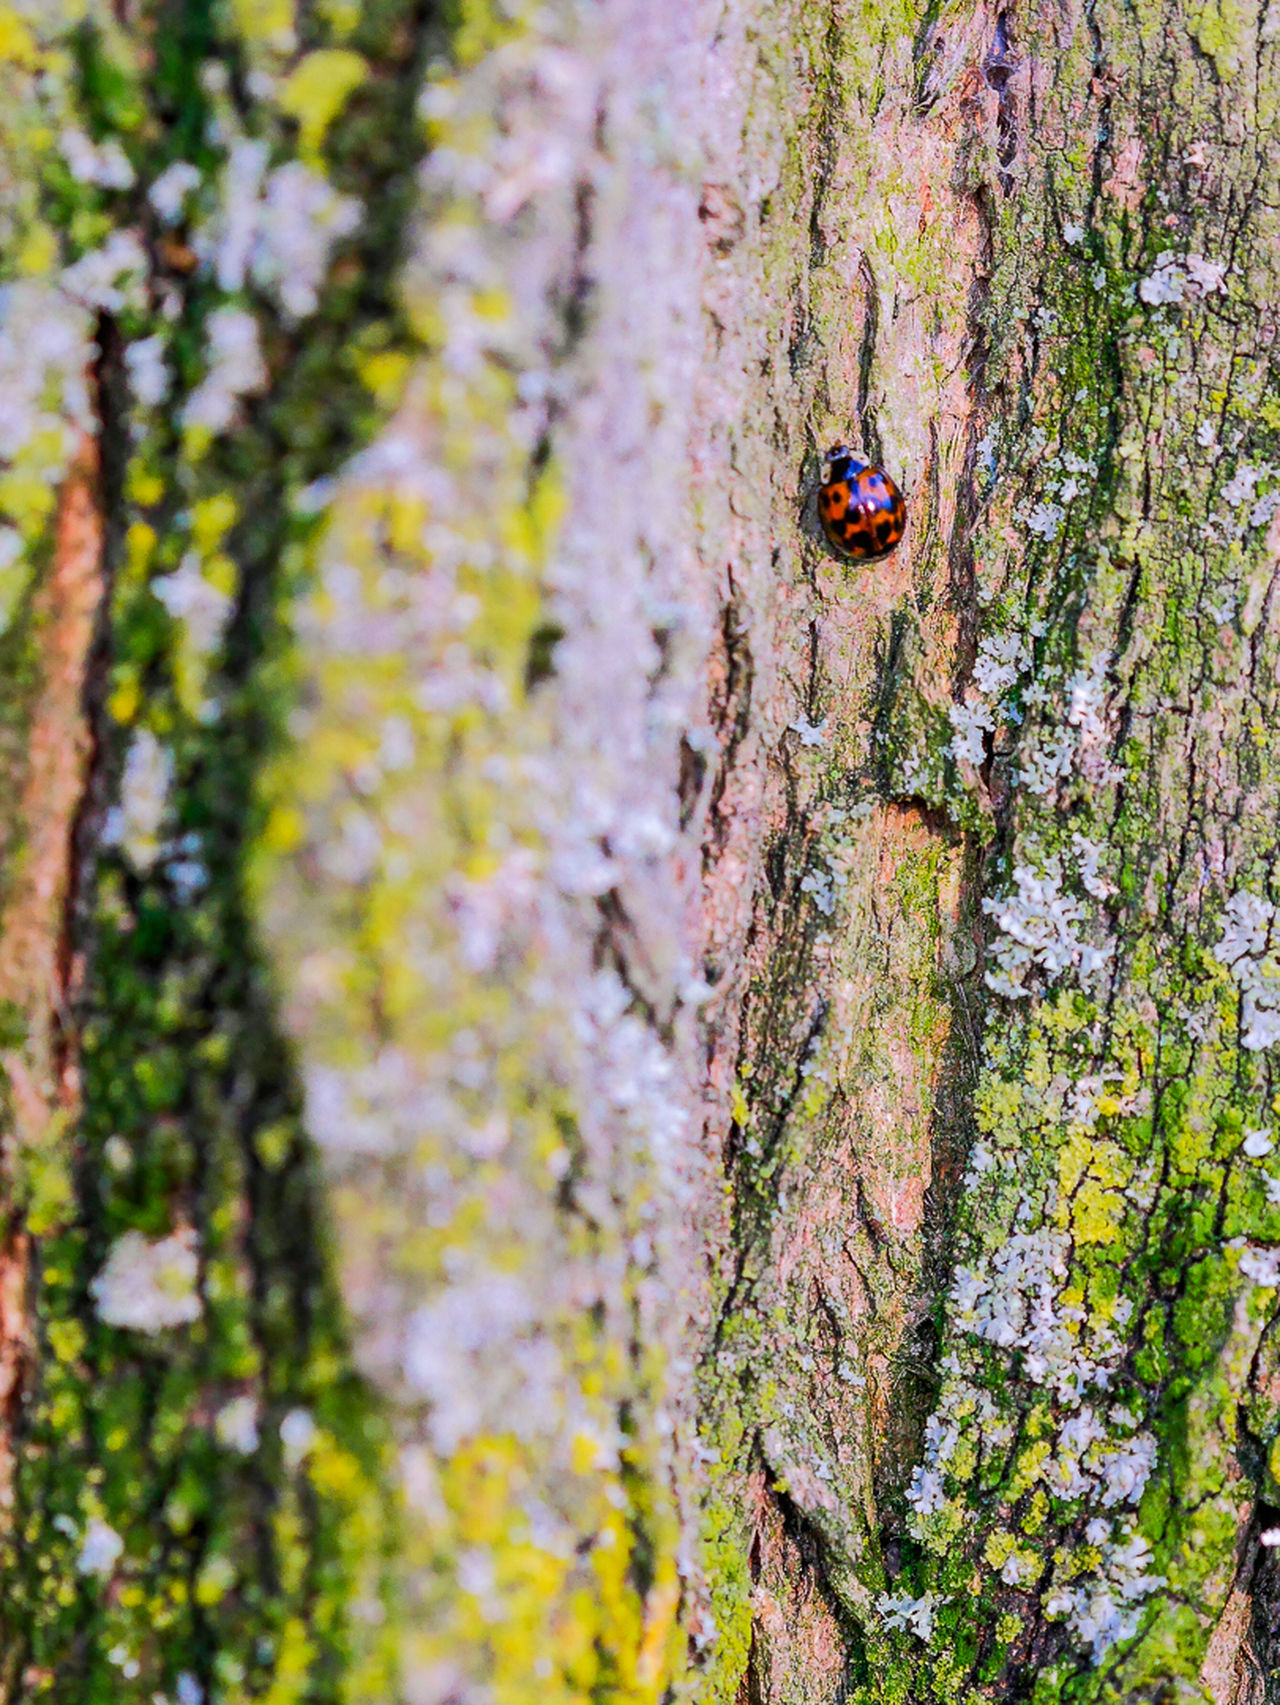 Animal Themes Bark Close-up Insect Ladybeetle Nature One Animal Textured